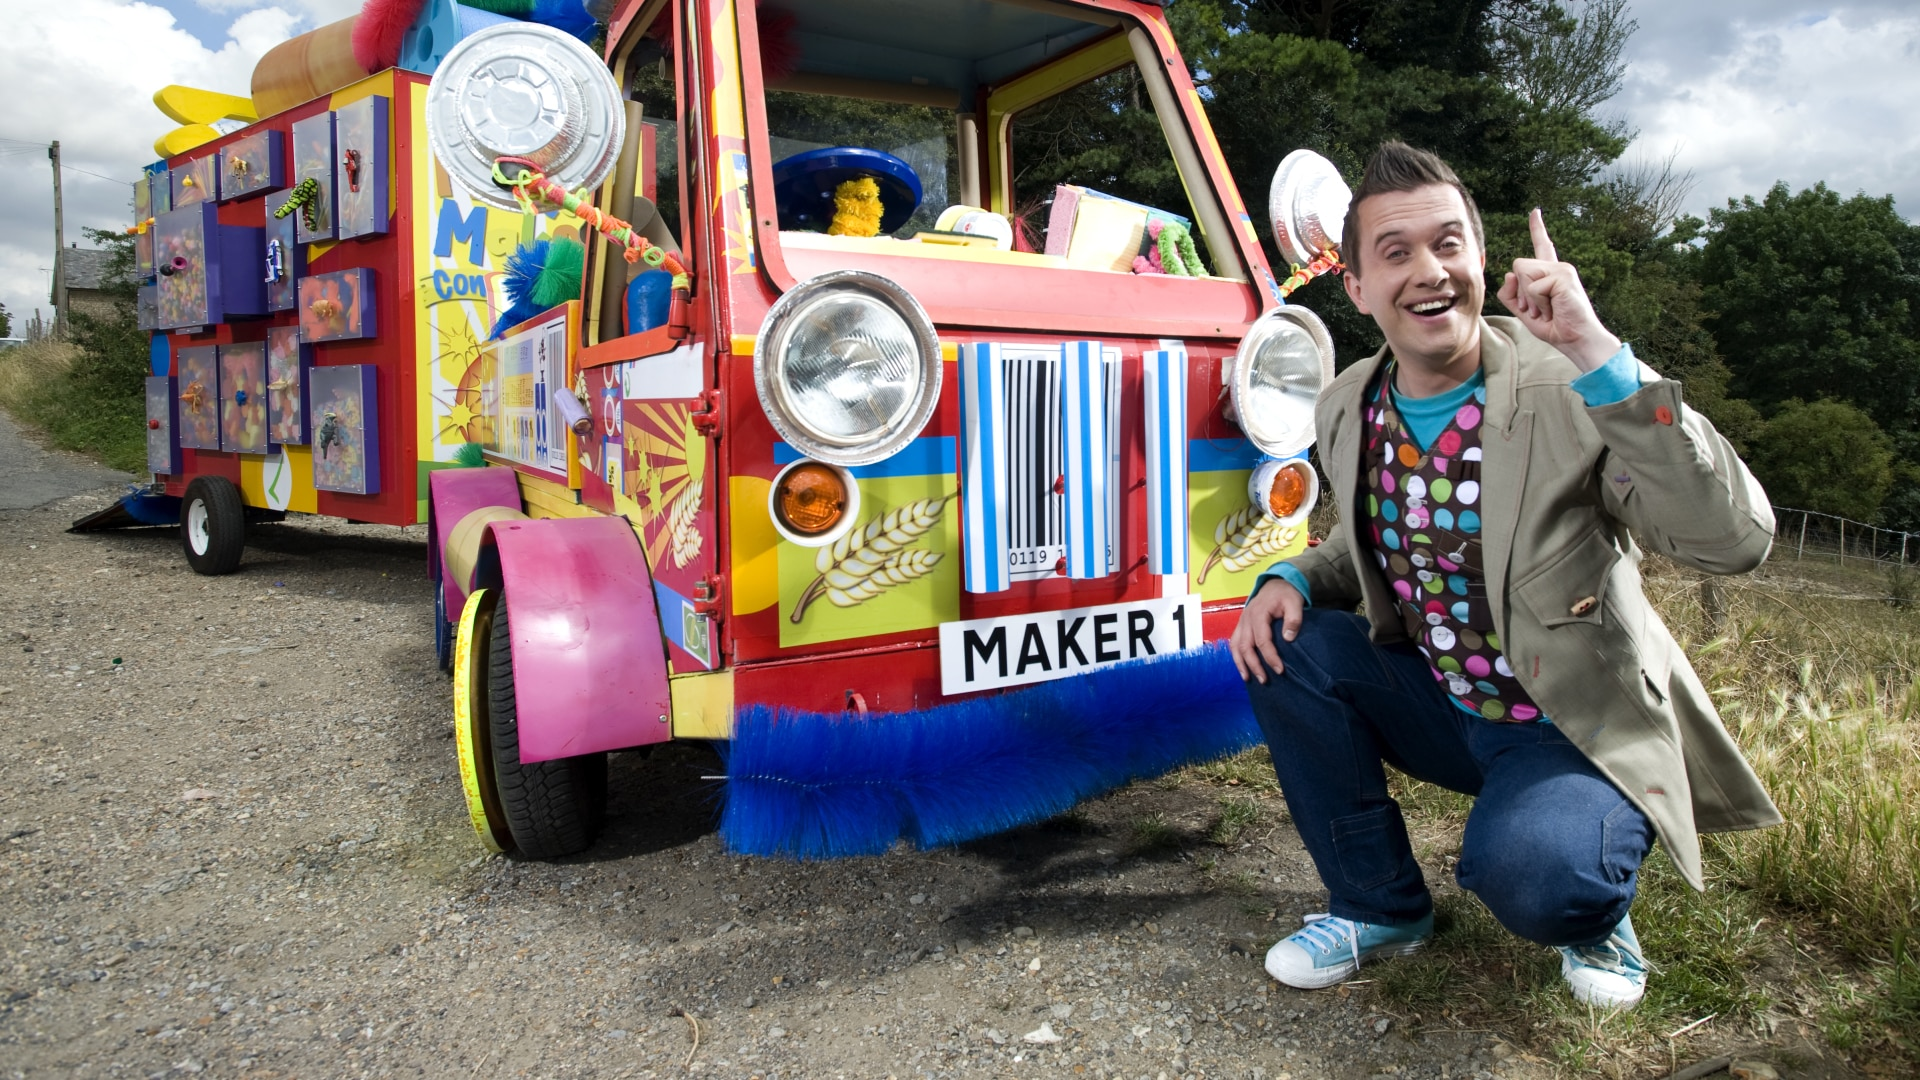 Mister Maker Comes To Town 8